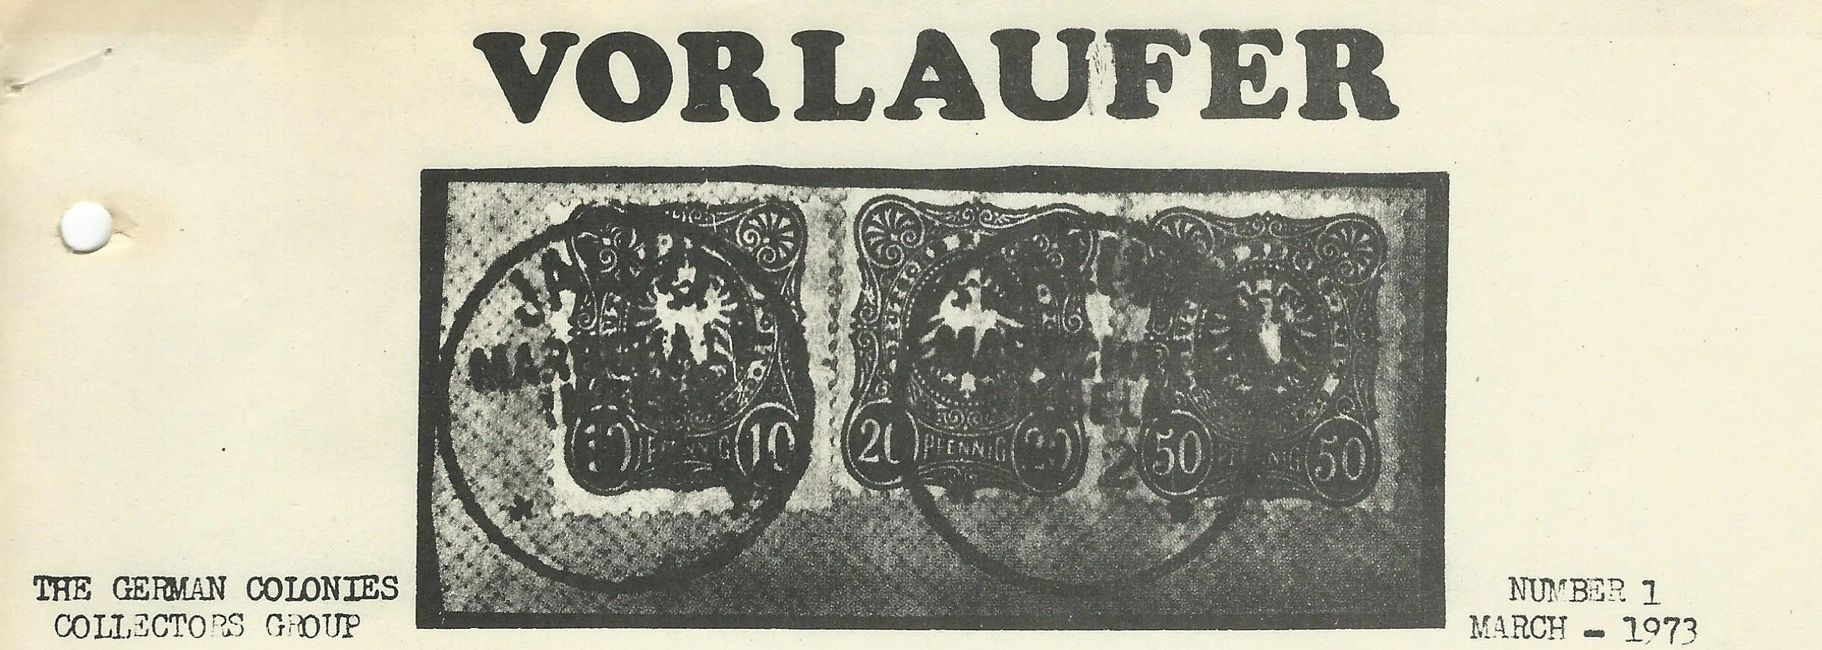 The cover page of the first issue of the Vorlaufer Journal in 1973.